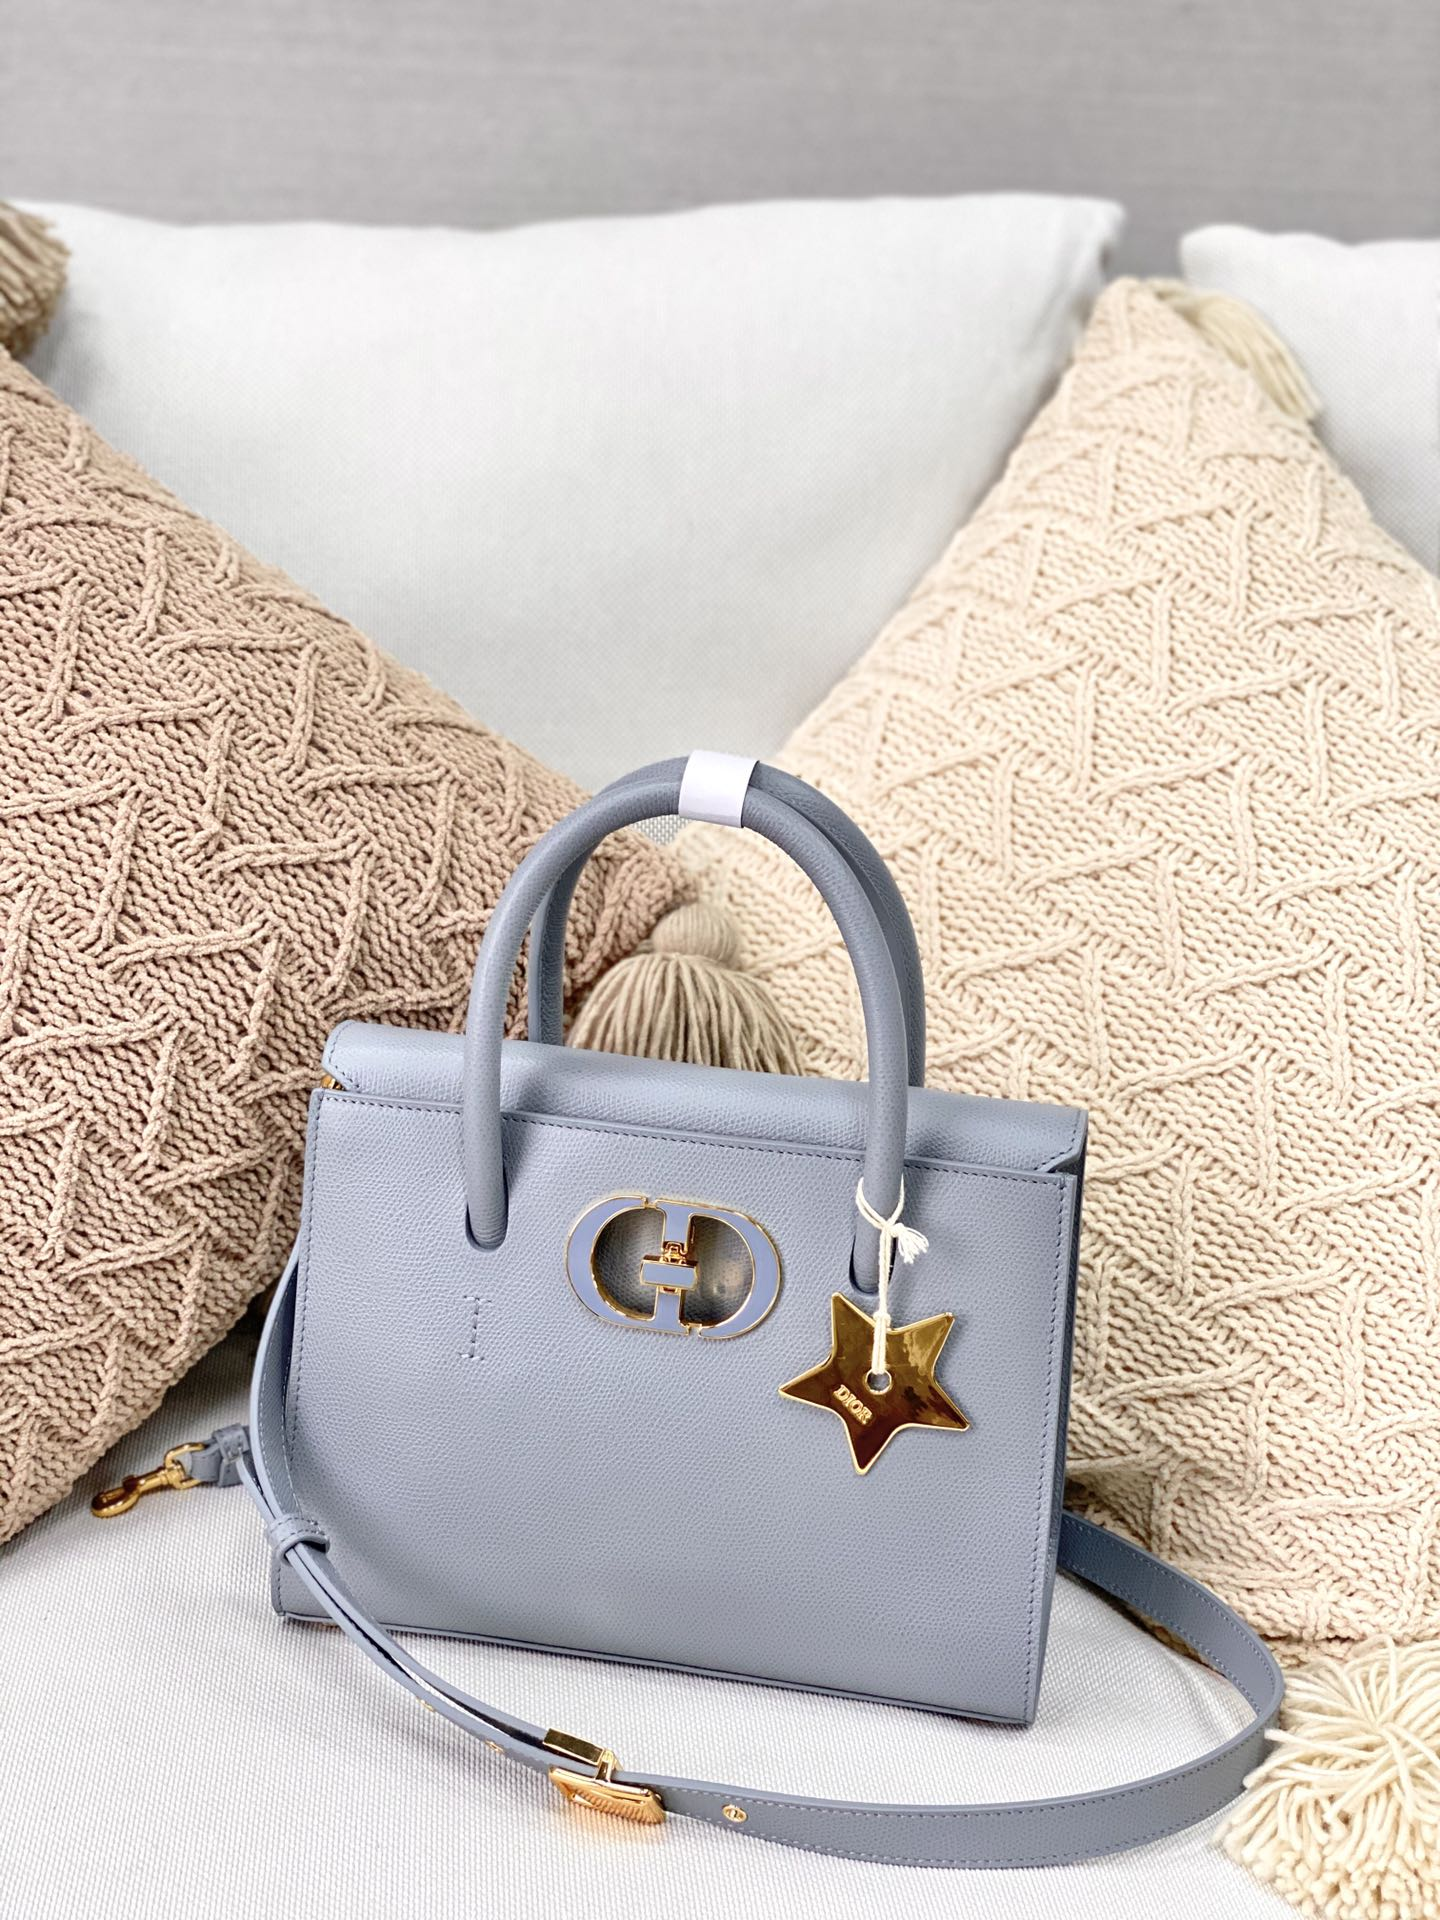 Copy Dior Medium St Honore Tote Grained Calfskin Cloud Blue